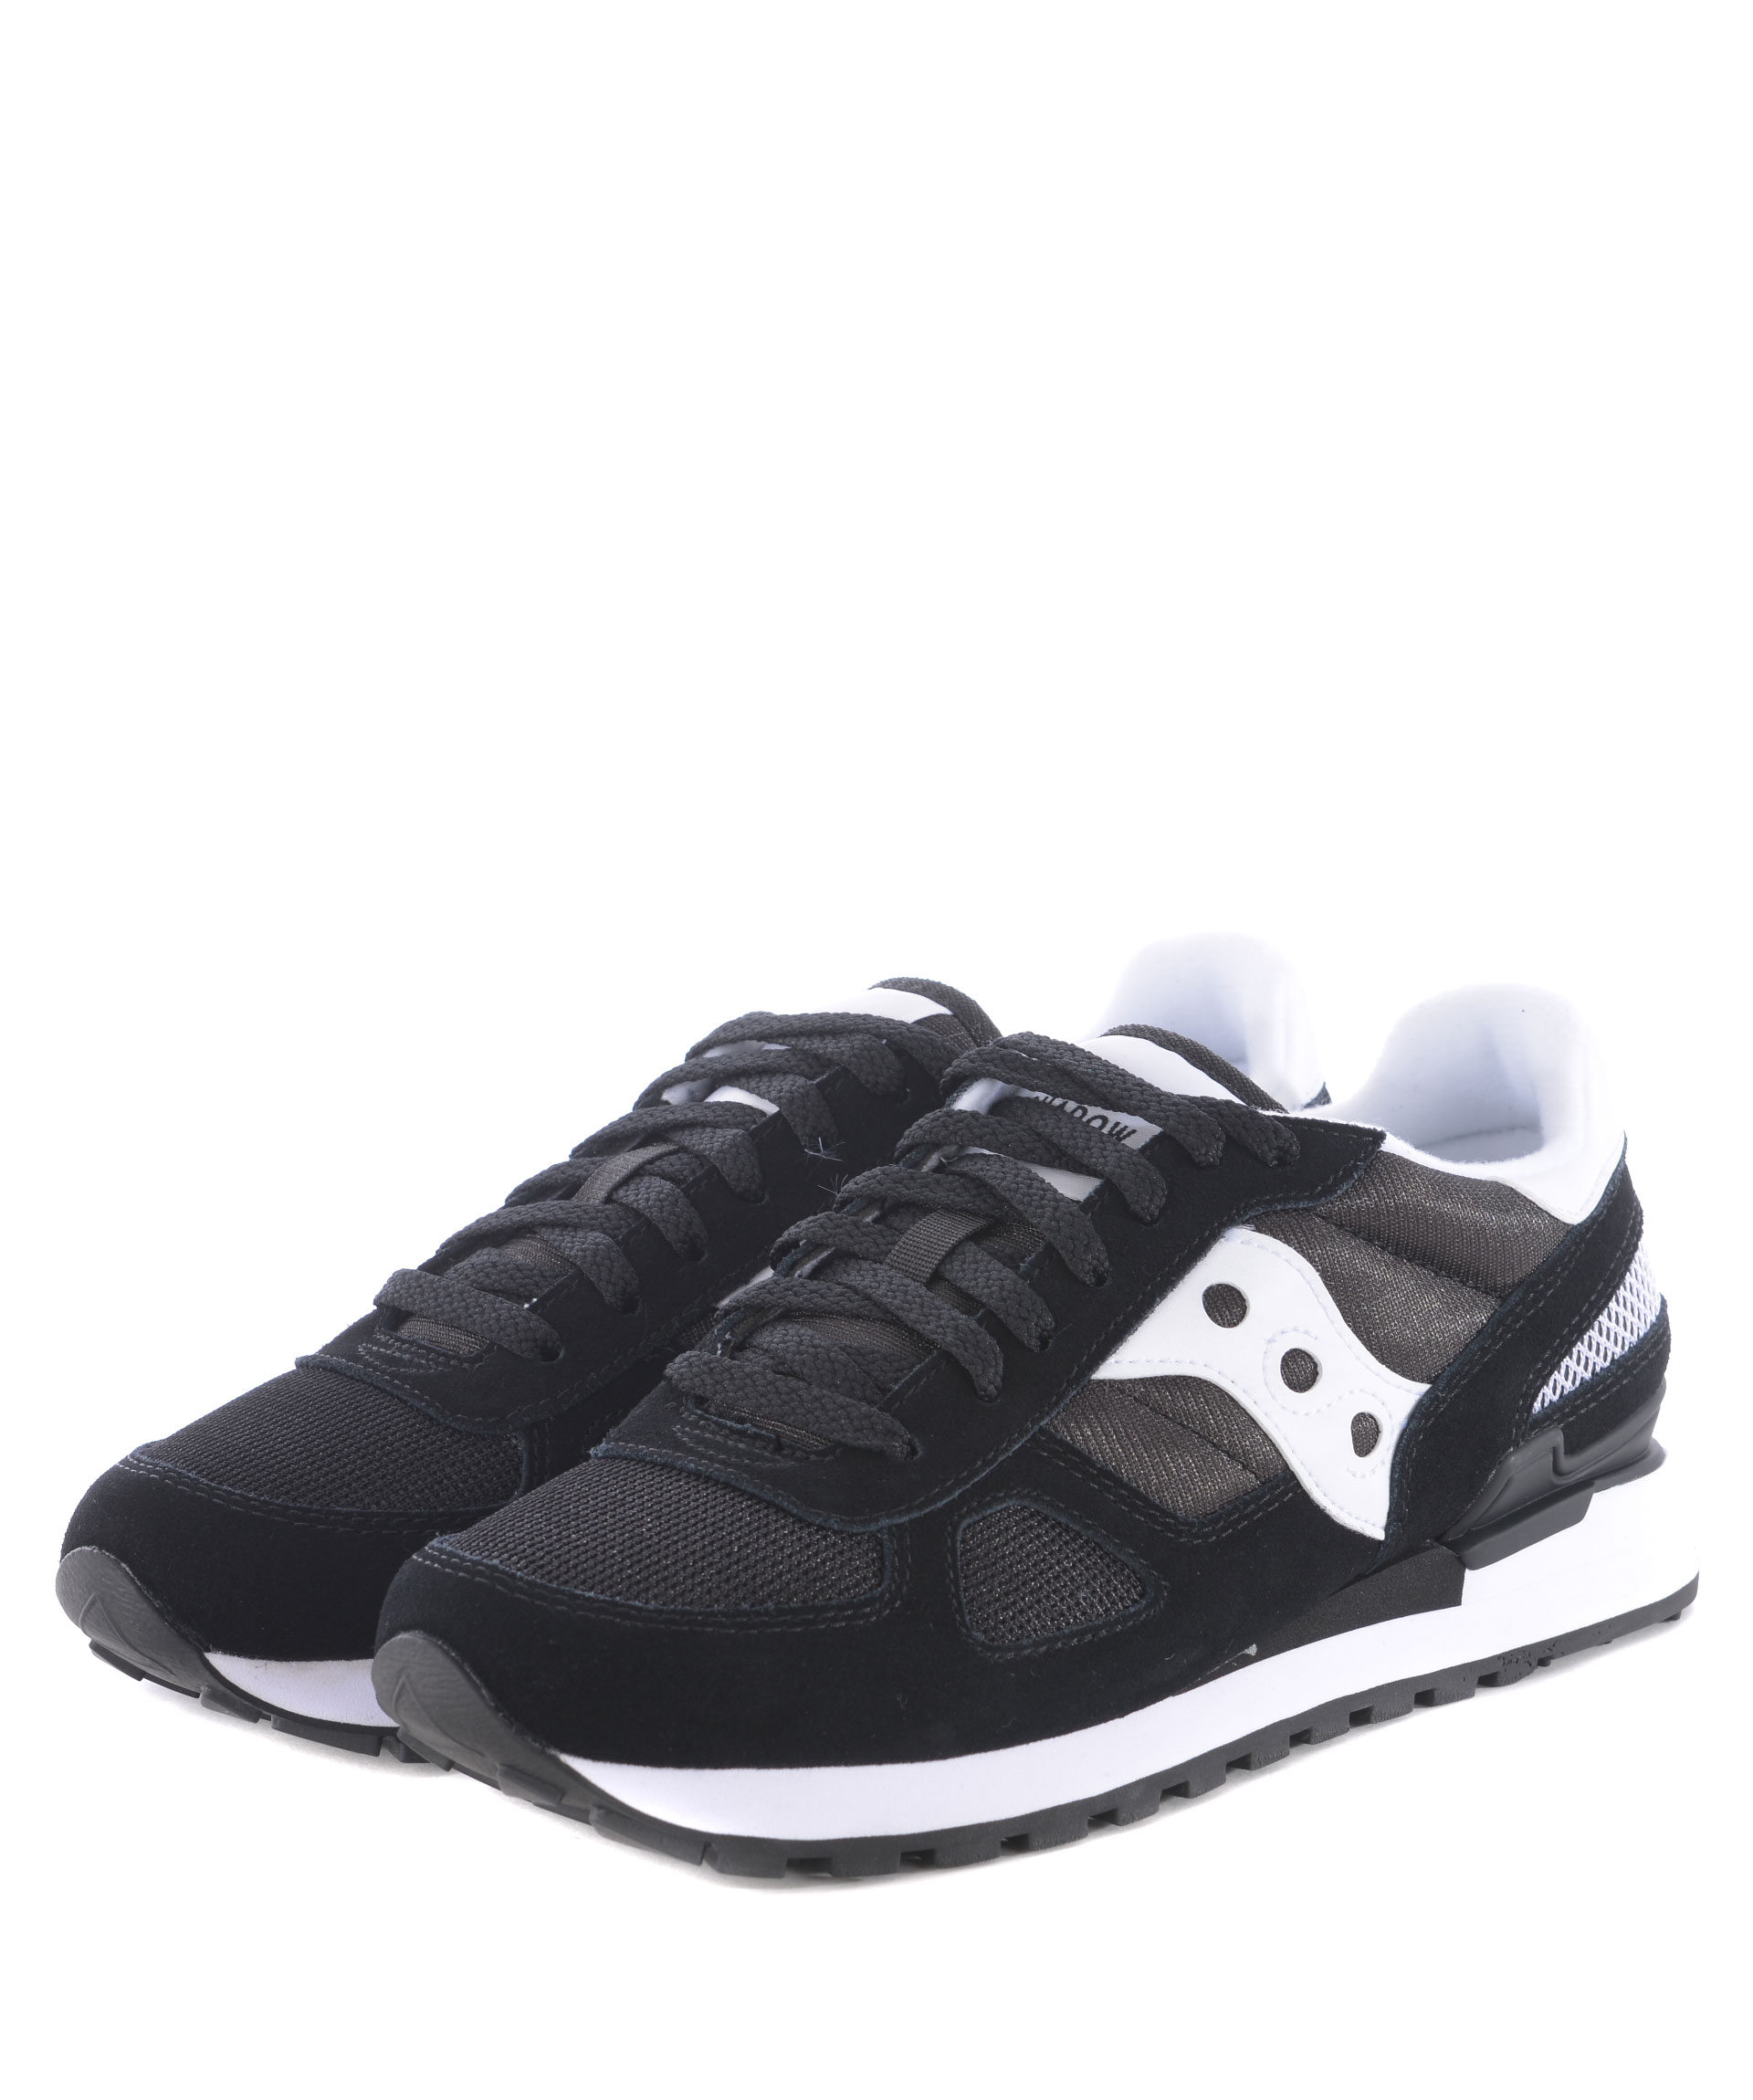 SAUCONY SHADOW ORIGINAL 2108518 SNEAKERS MODA Uomo